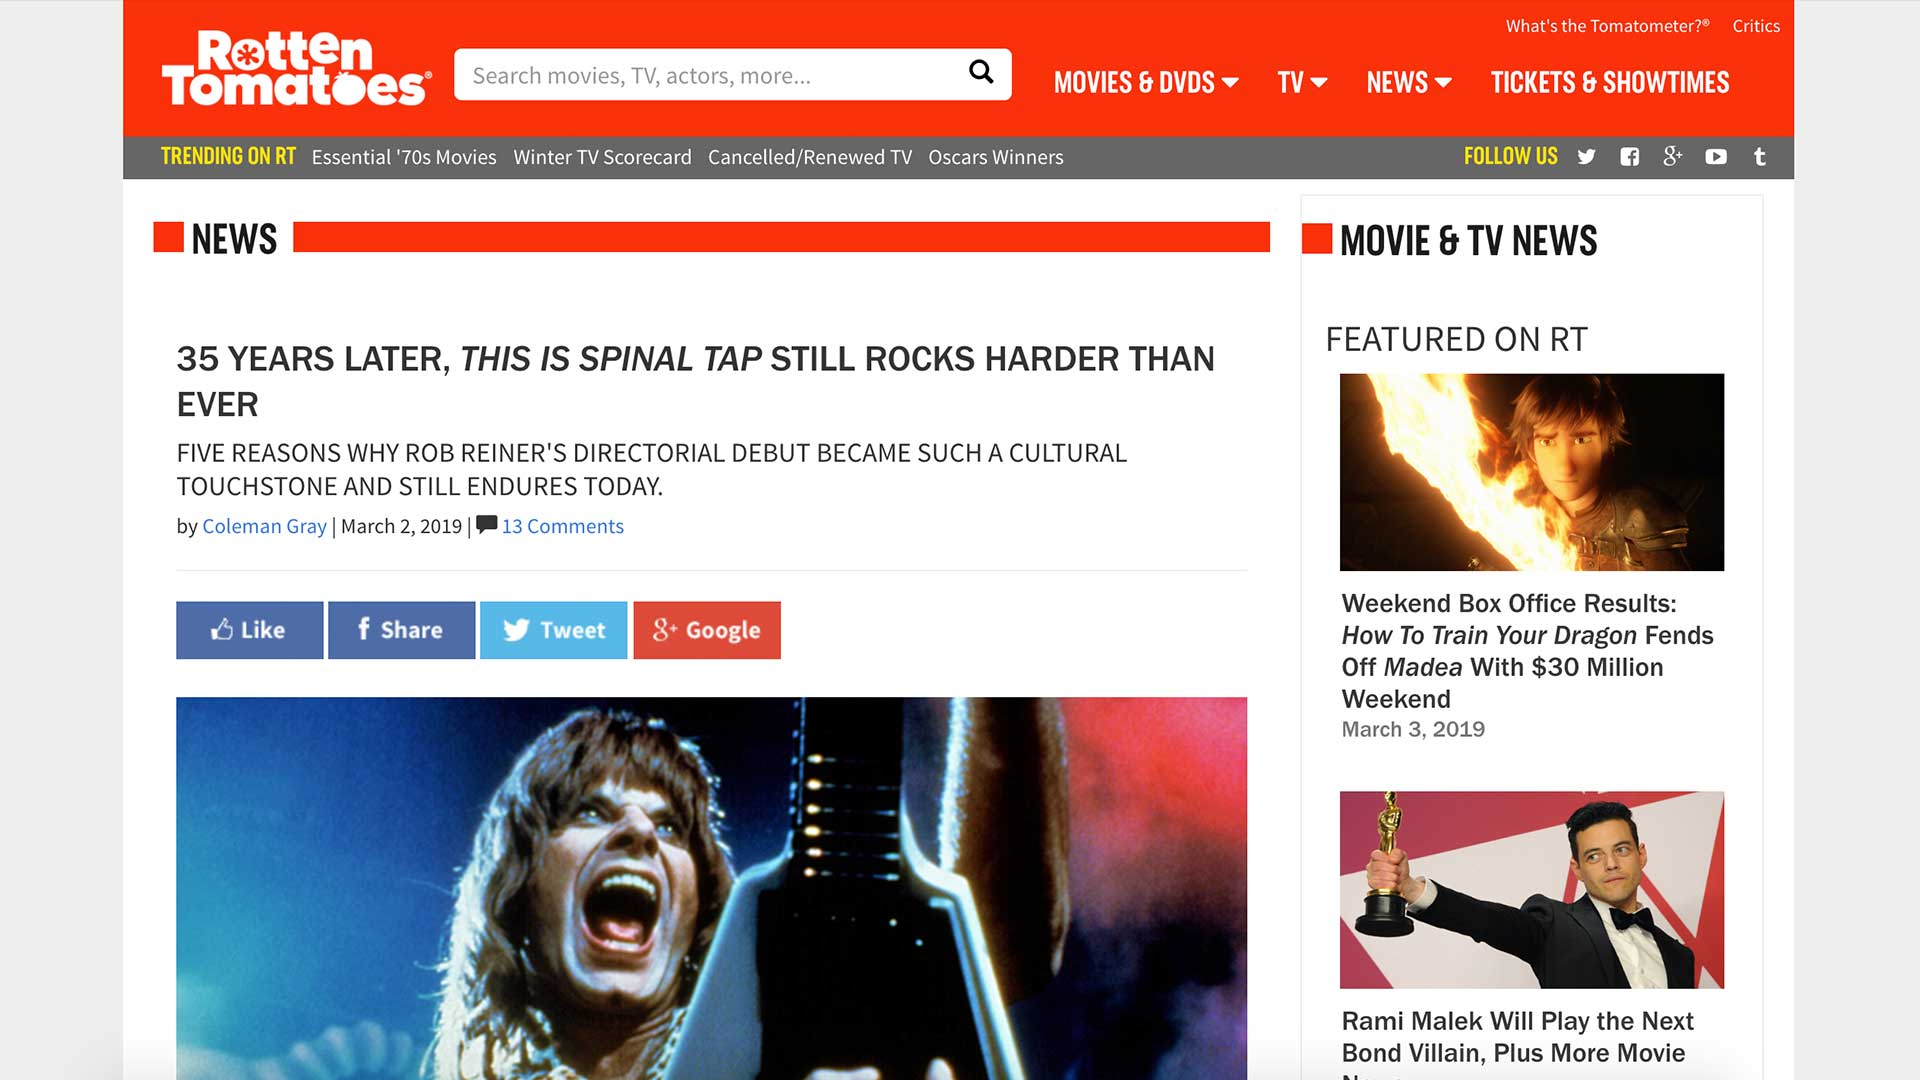 Fairness Rocks News 35 YEARS LATER, THIS IS SPINAL TAP STILL ROCKS HARDER THAN EVER